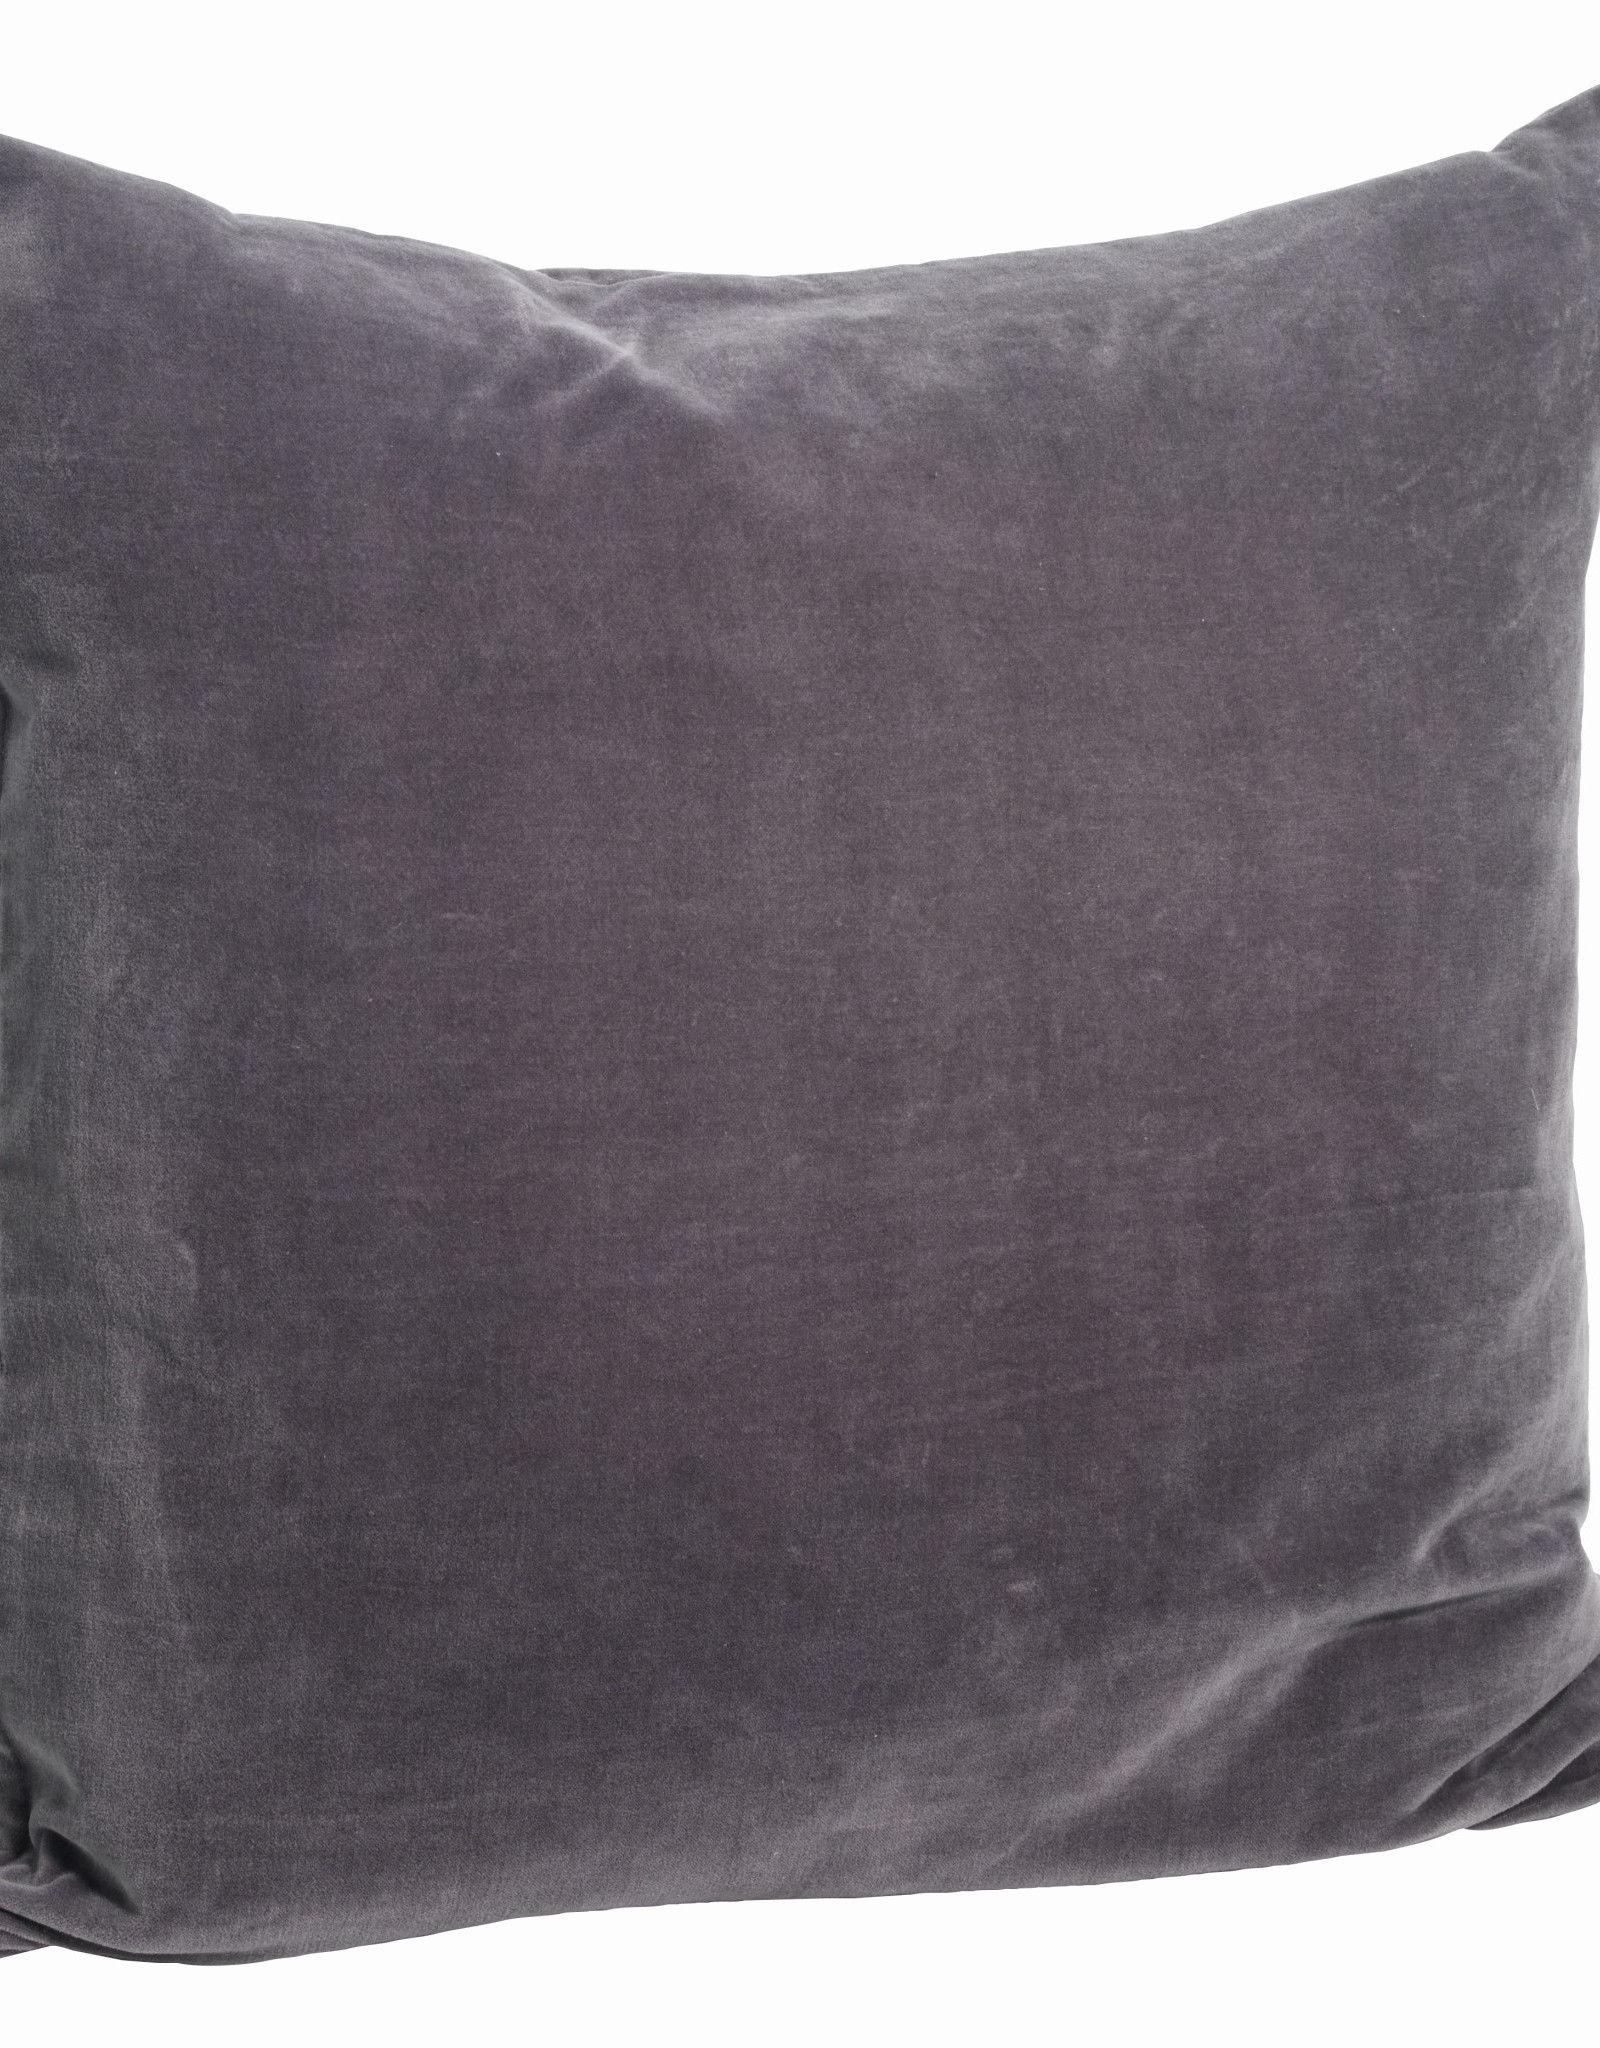 Madam Stoltz Kussensloop Dark Purple Washed Velvet 50 x 50 cm